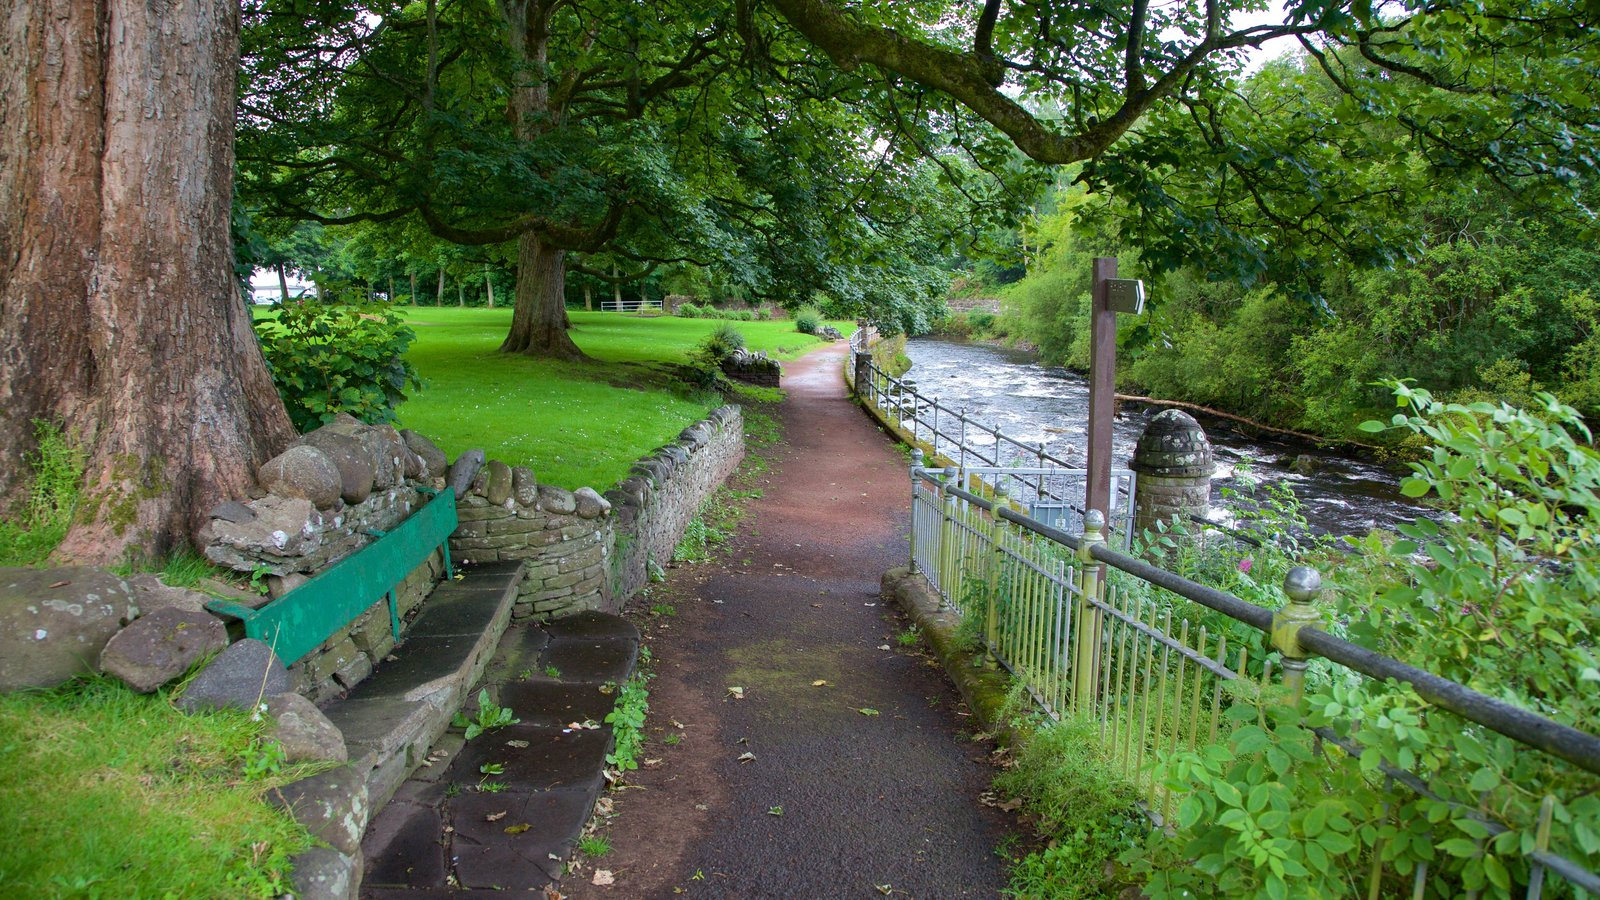 Dunblane featuring a park and a river or creek